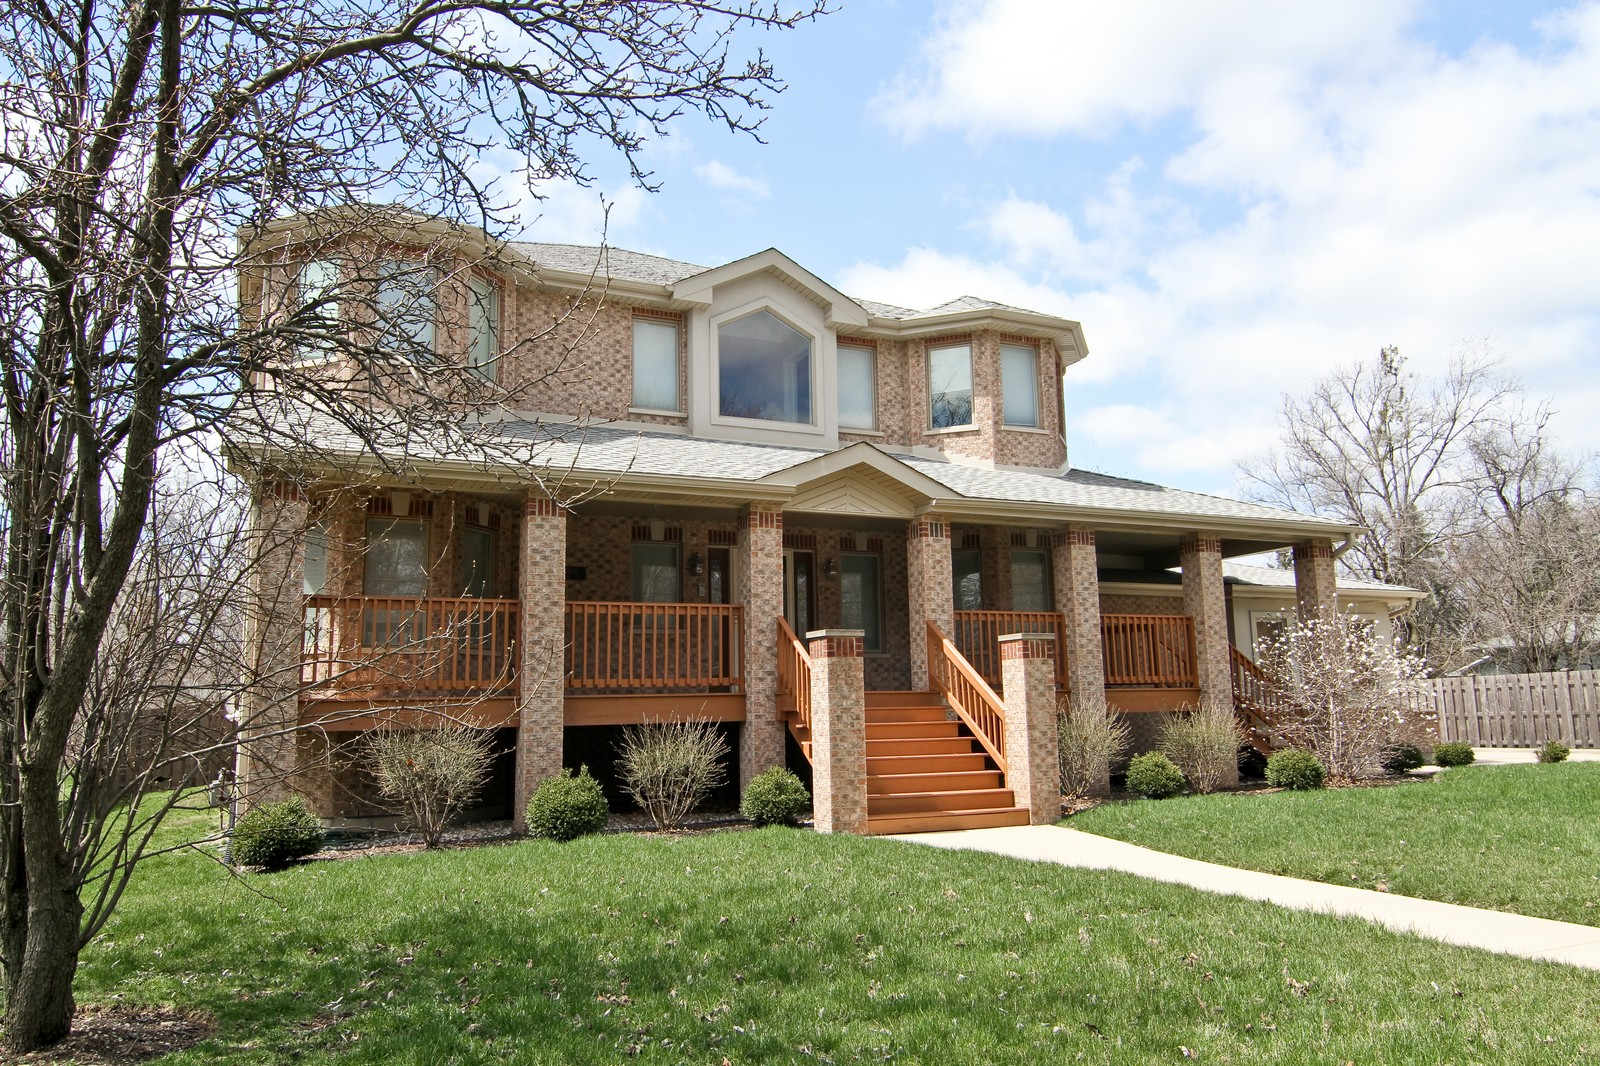 Real Estate Photography - 5626 Chase Ave, Downers Grove, IL, 60516 - Front View